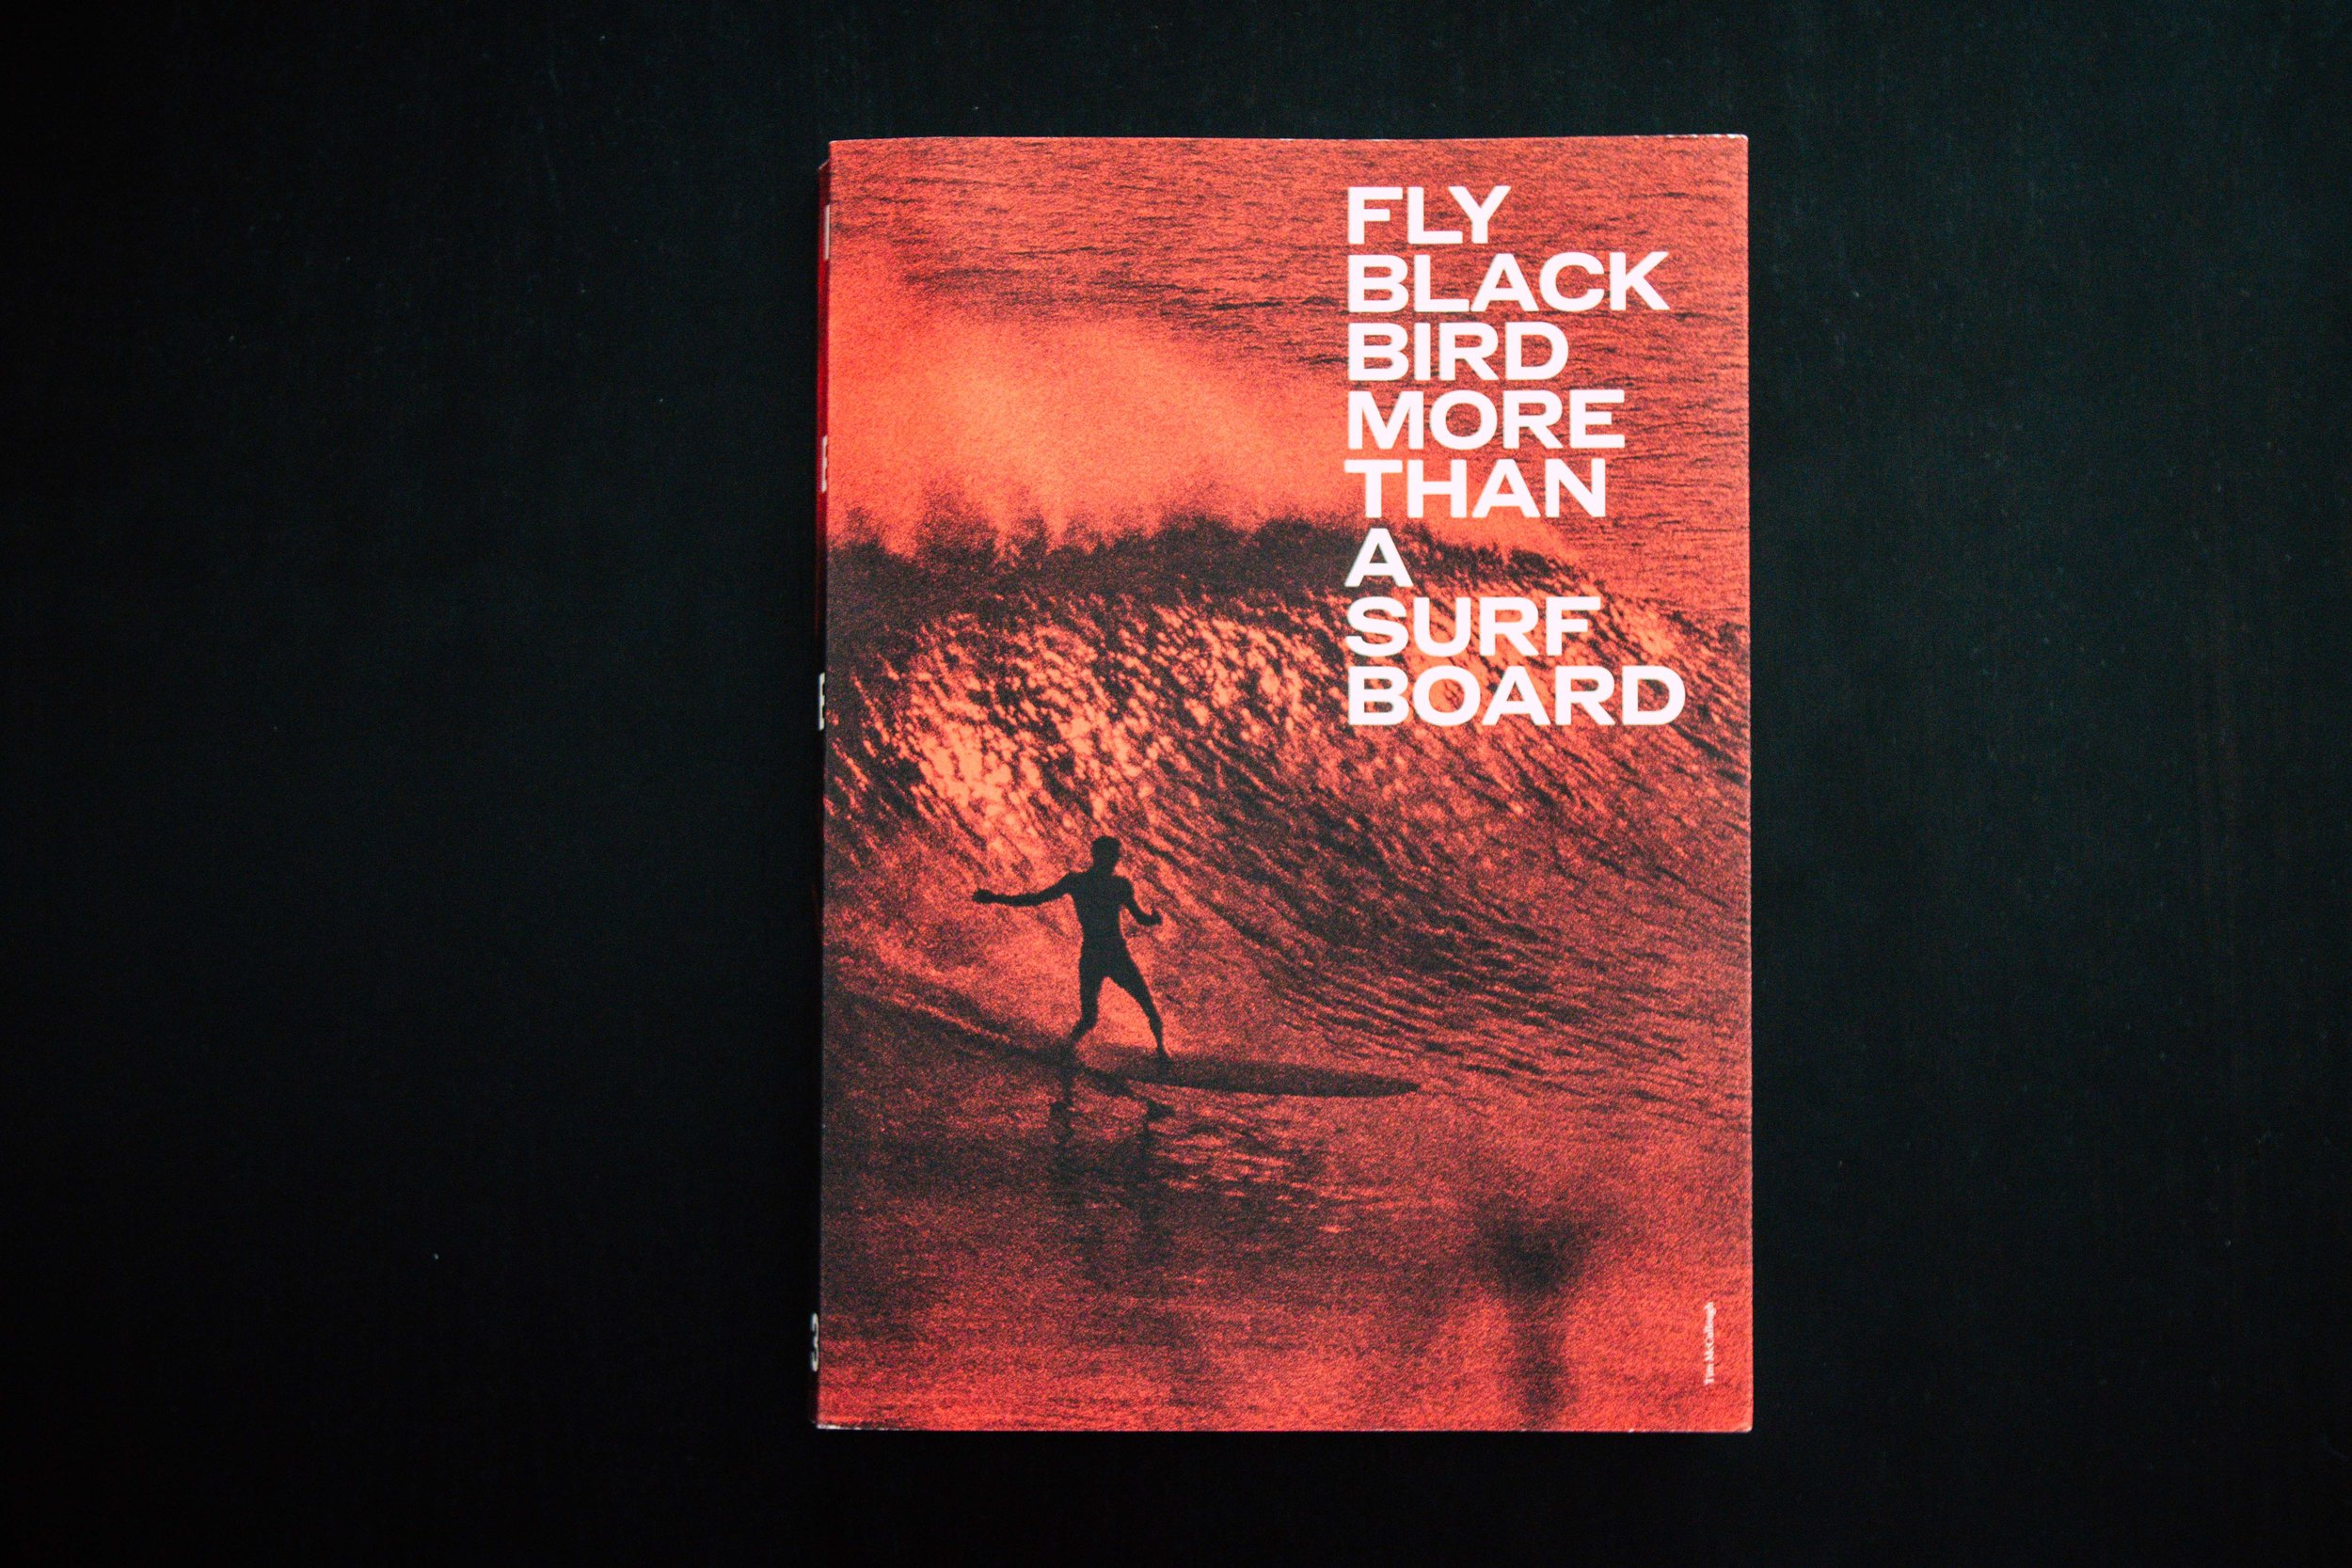 FLY BLACK BIRD MORE THAN A SURFBOARD 3 - BOOKS | LIVROS